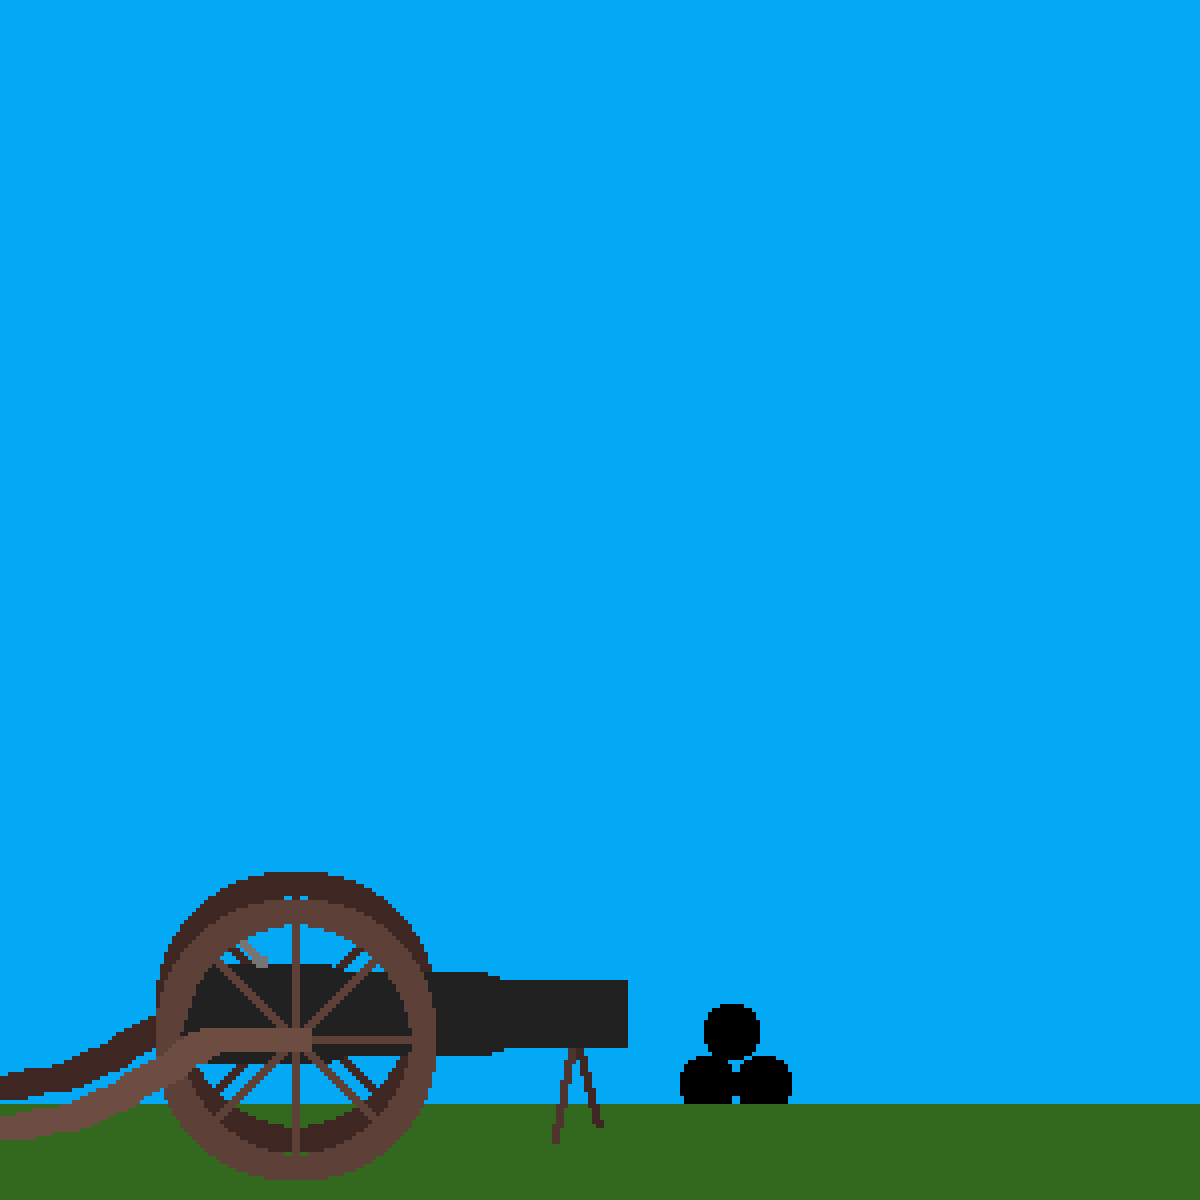 Cannon by Cw-flash